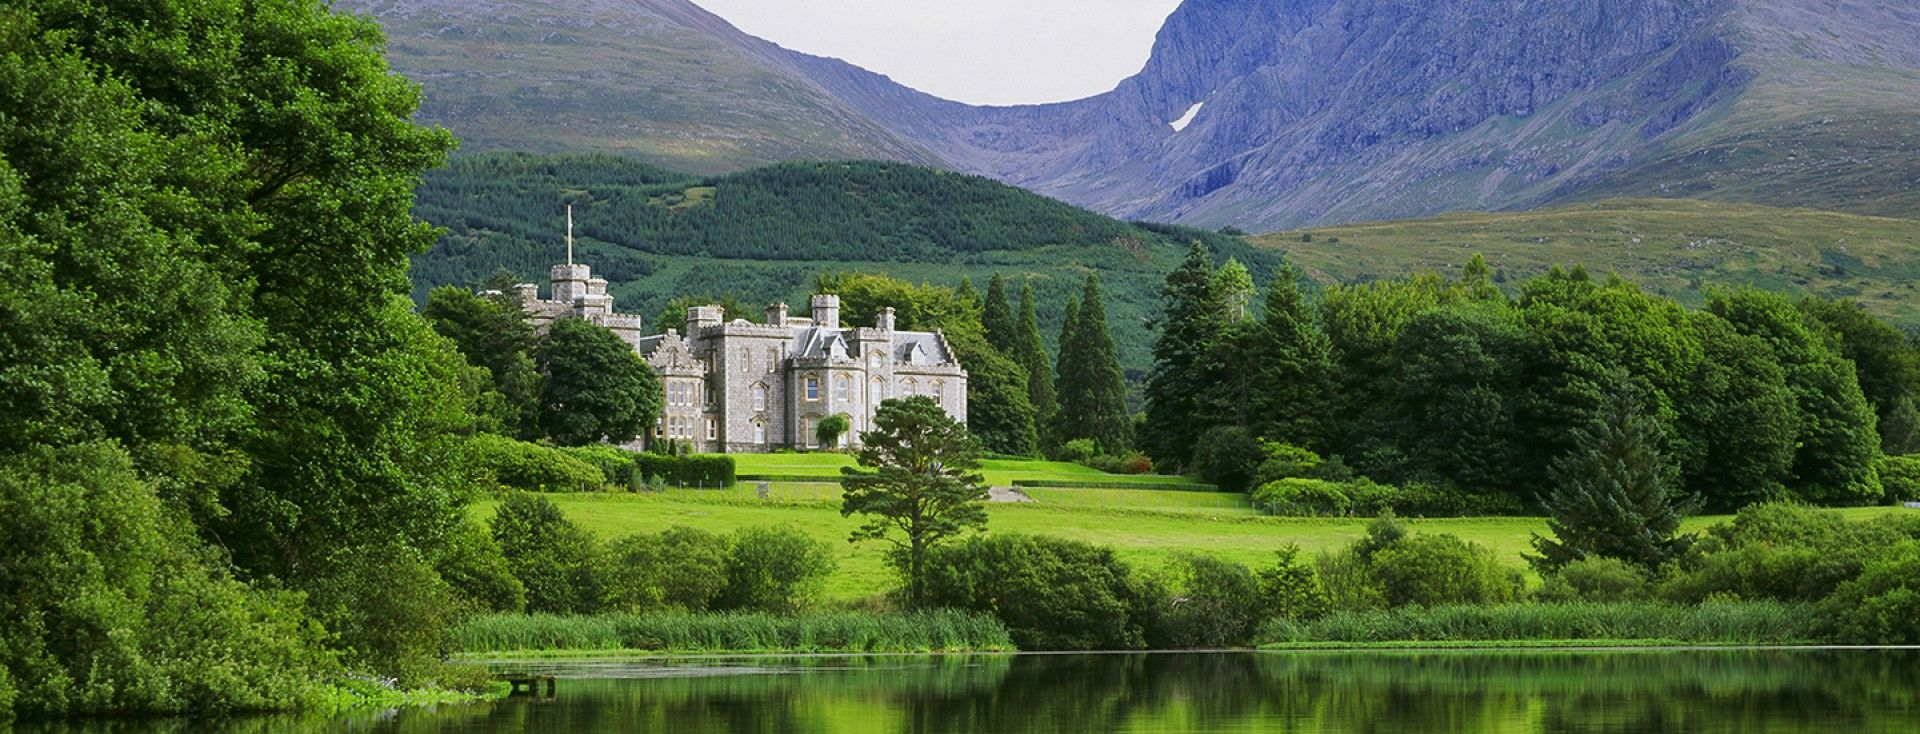 The Inverlochy Castle Hotel iswidely considered one of the worl